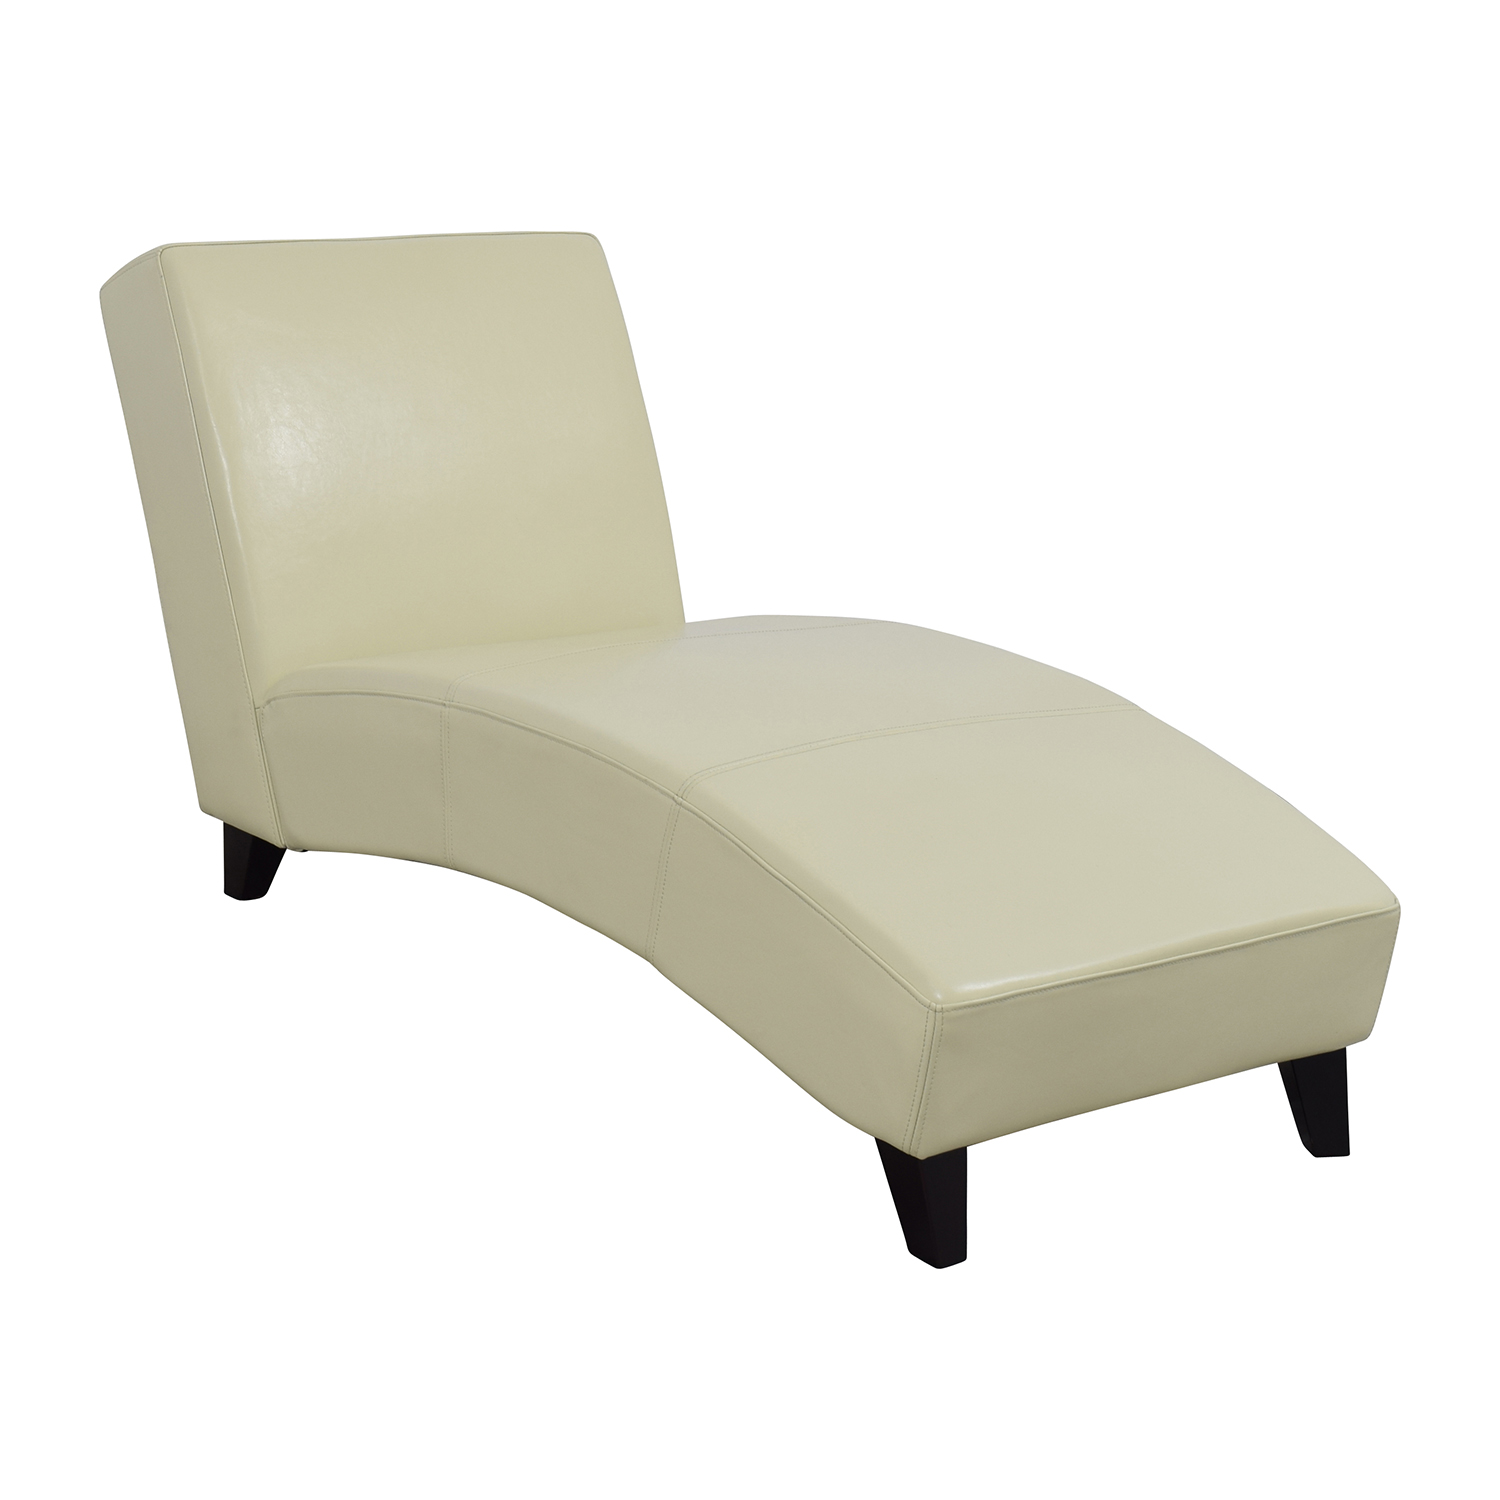 Wayfair White Leather Chaise sale ...  sc 1 st  Furnishare : chaise lounge second hand - Sectionals, Sofas & Couches